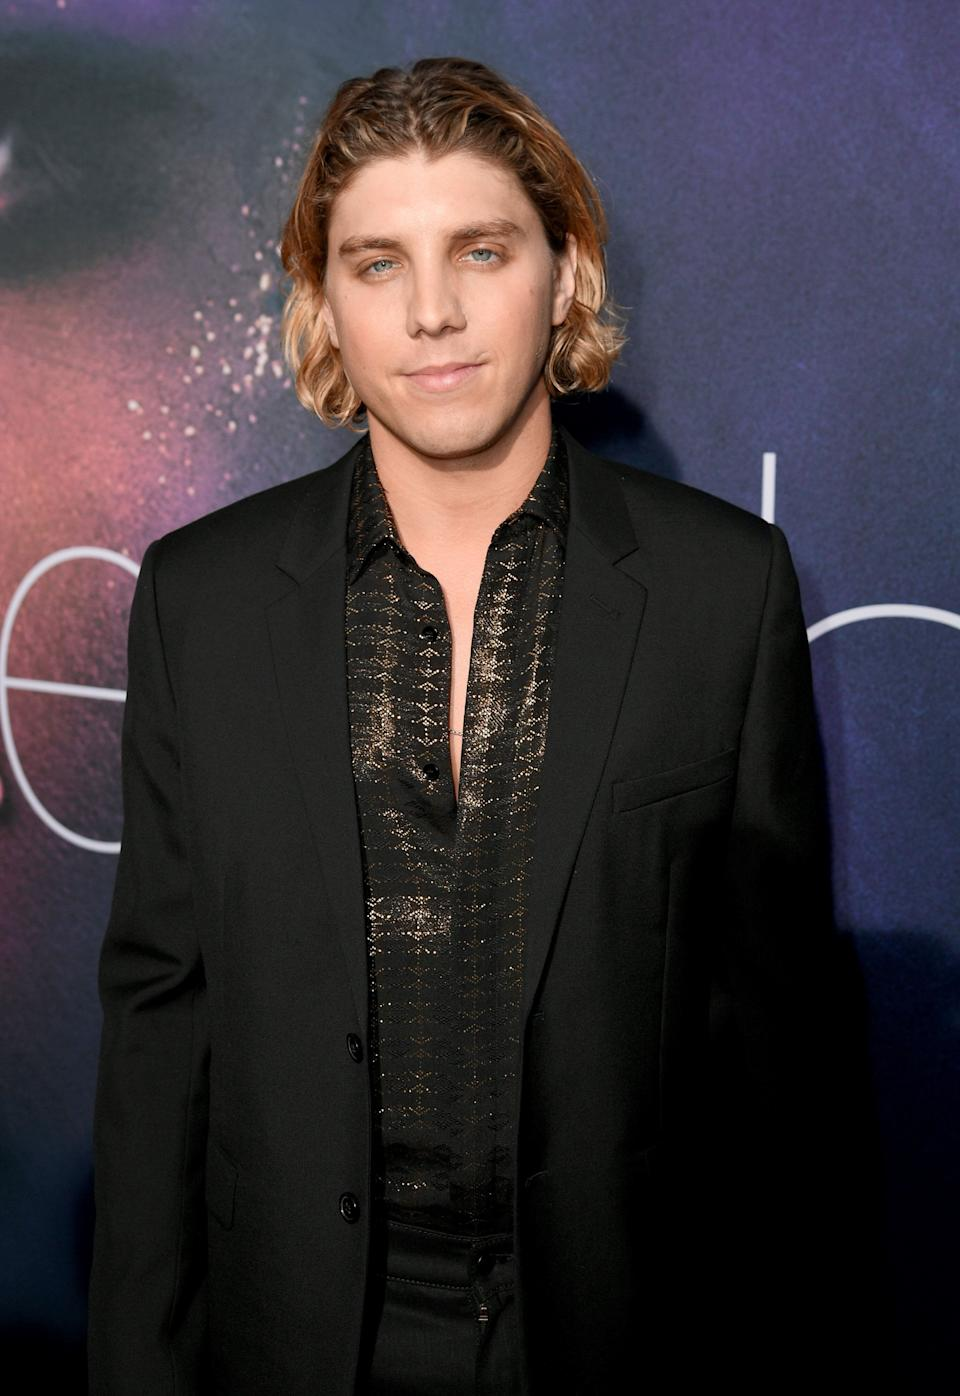 Lukas Gage at the premiere of Euphoria (Photo: Kevin Winter via Getty Images)